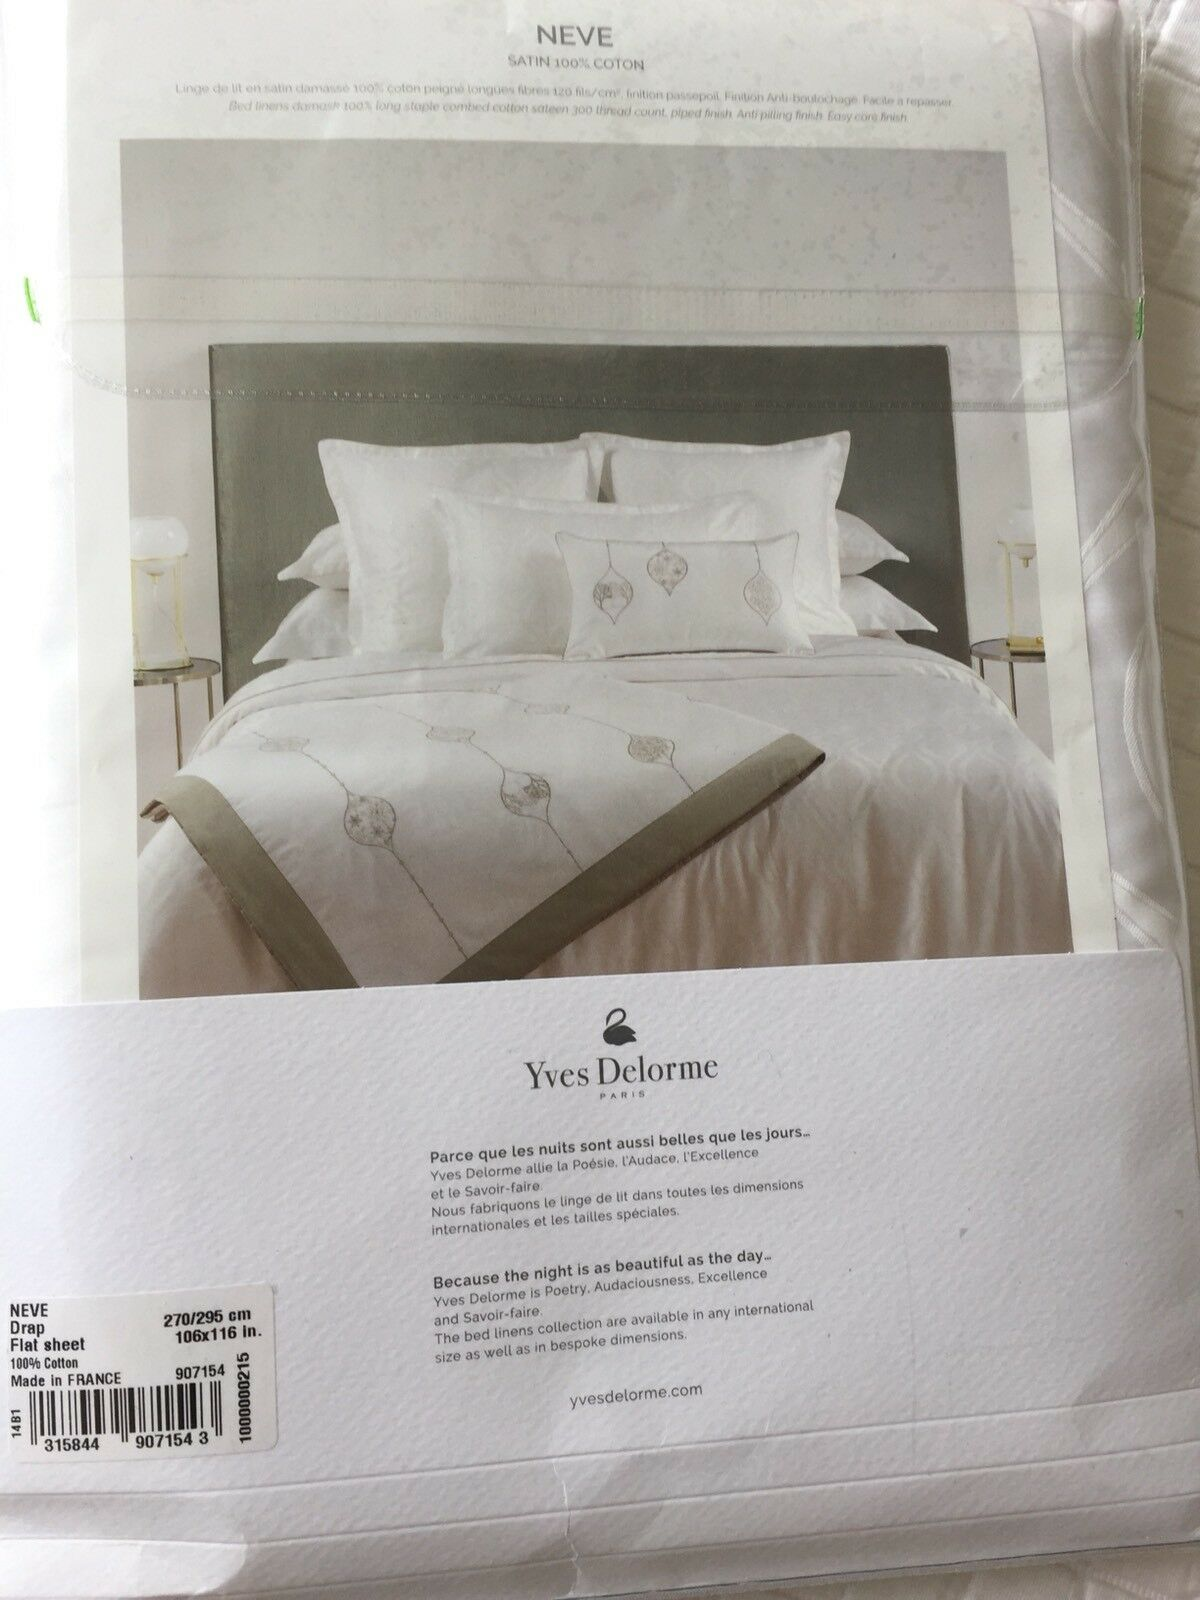 Linge De Lit Made In France Yves Delorme Neve Blanc Damask Satin King Superking Flat Sheet Ebay